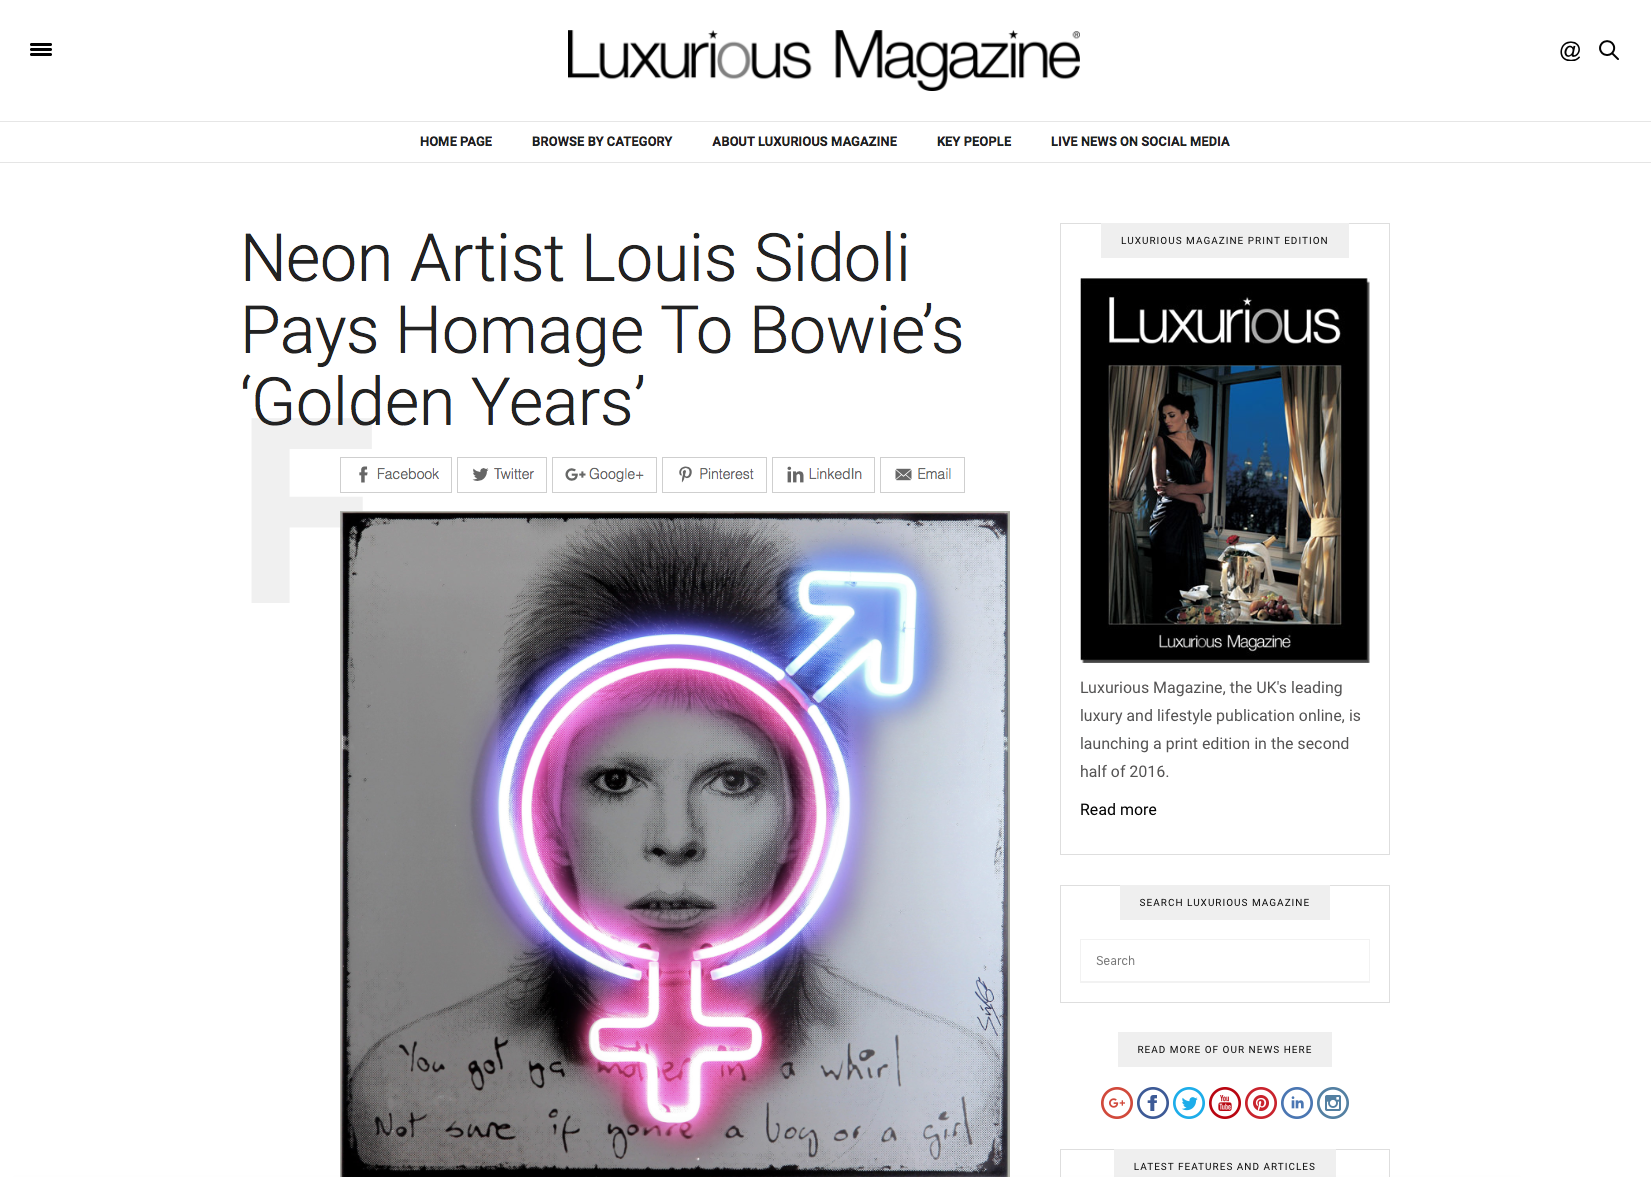 Louis Sidoli Neon Artist: Luxurious Magazine